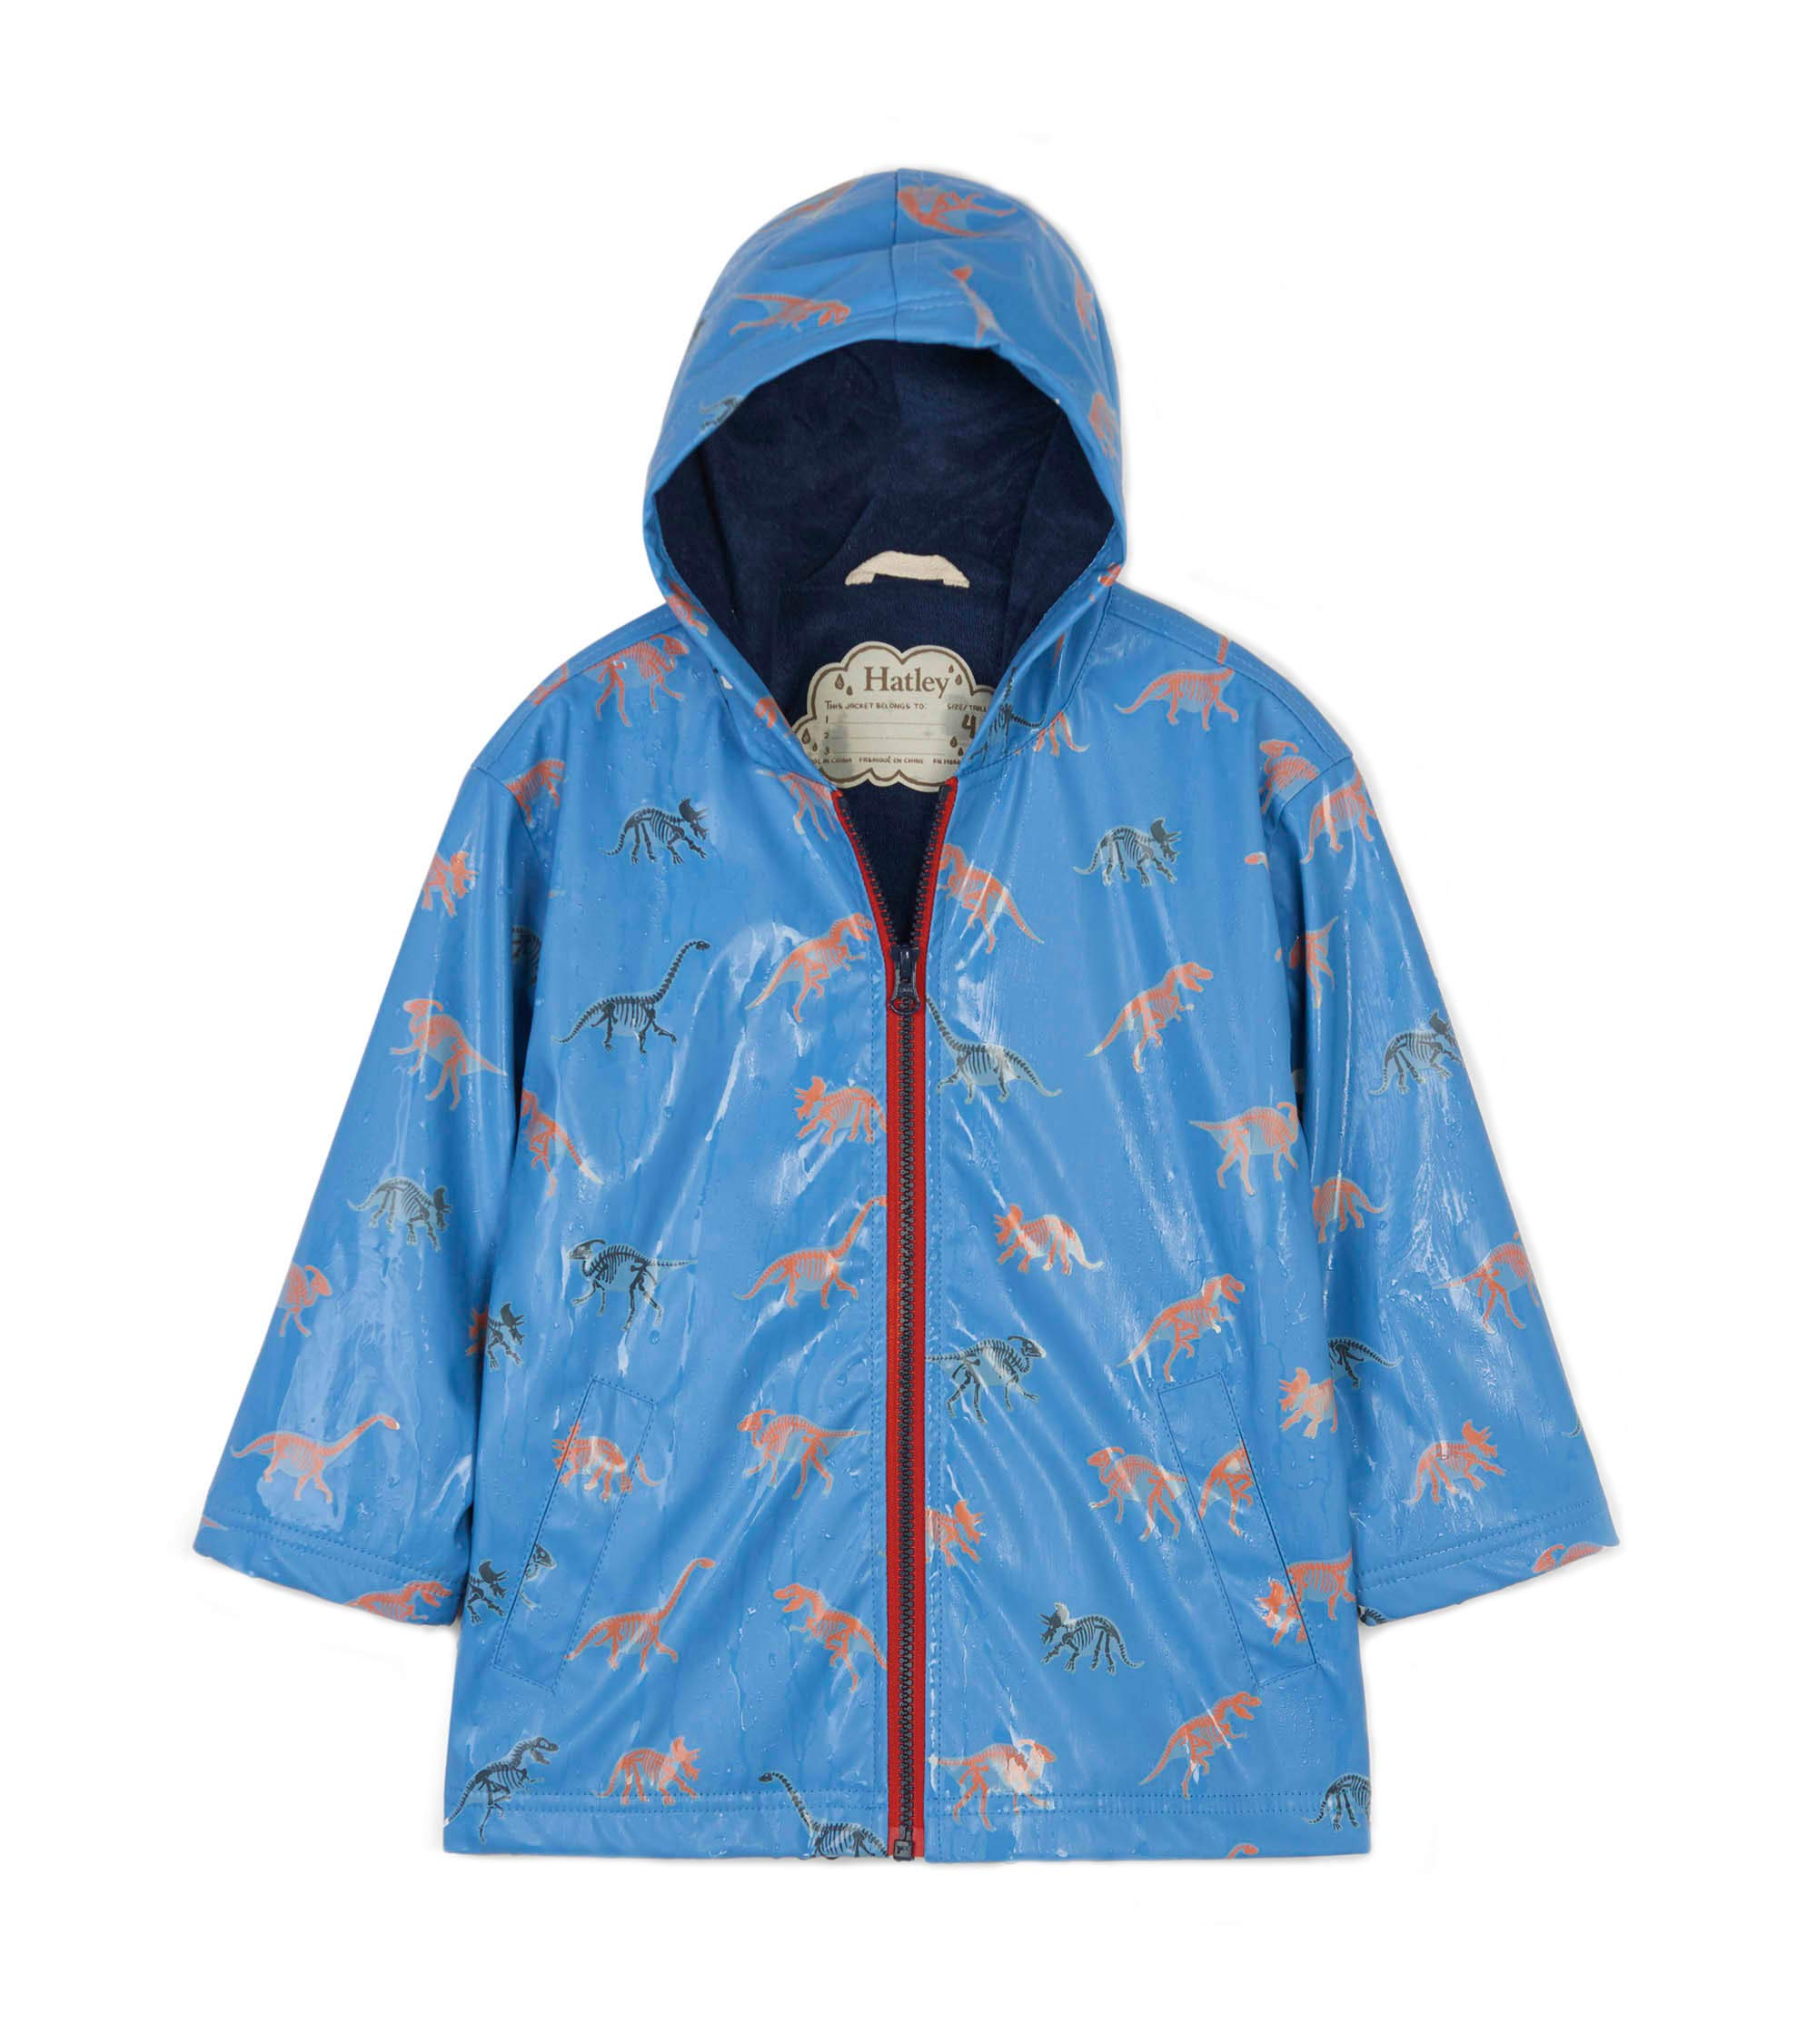 Hatley Boys' Big Splash Jacket, Color Changing Silhouette Dinos 7 Years by Hatley (Image #3)